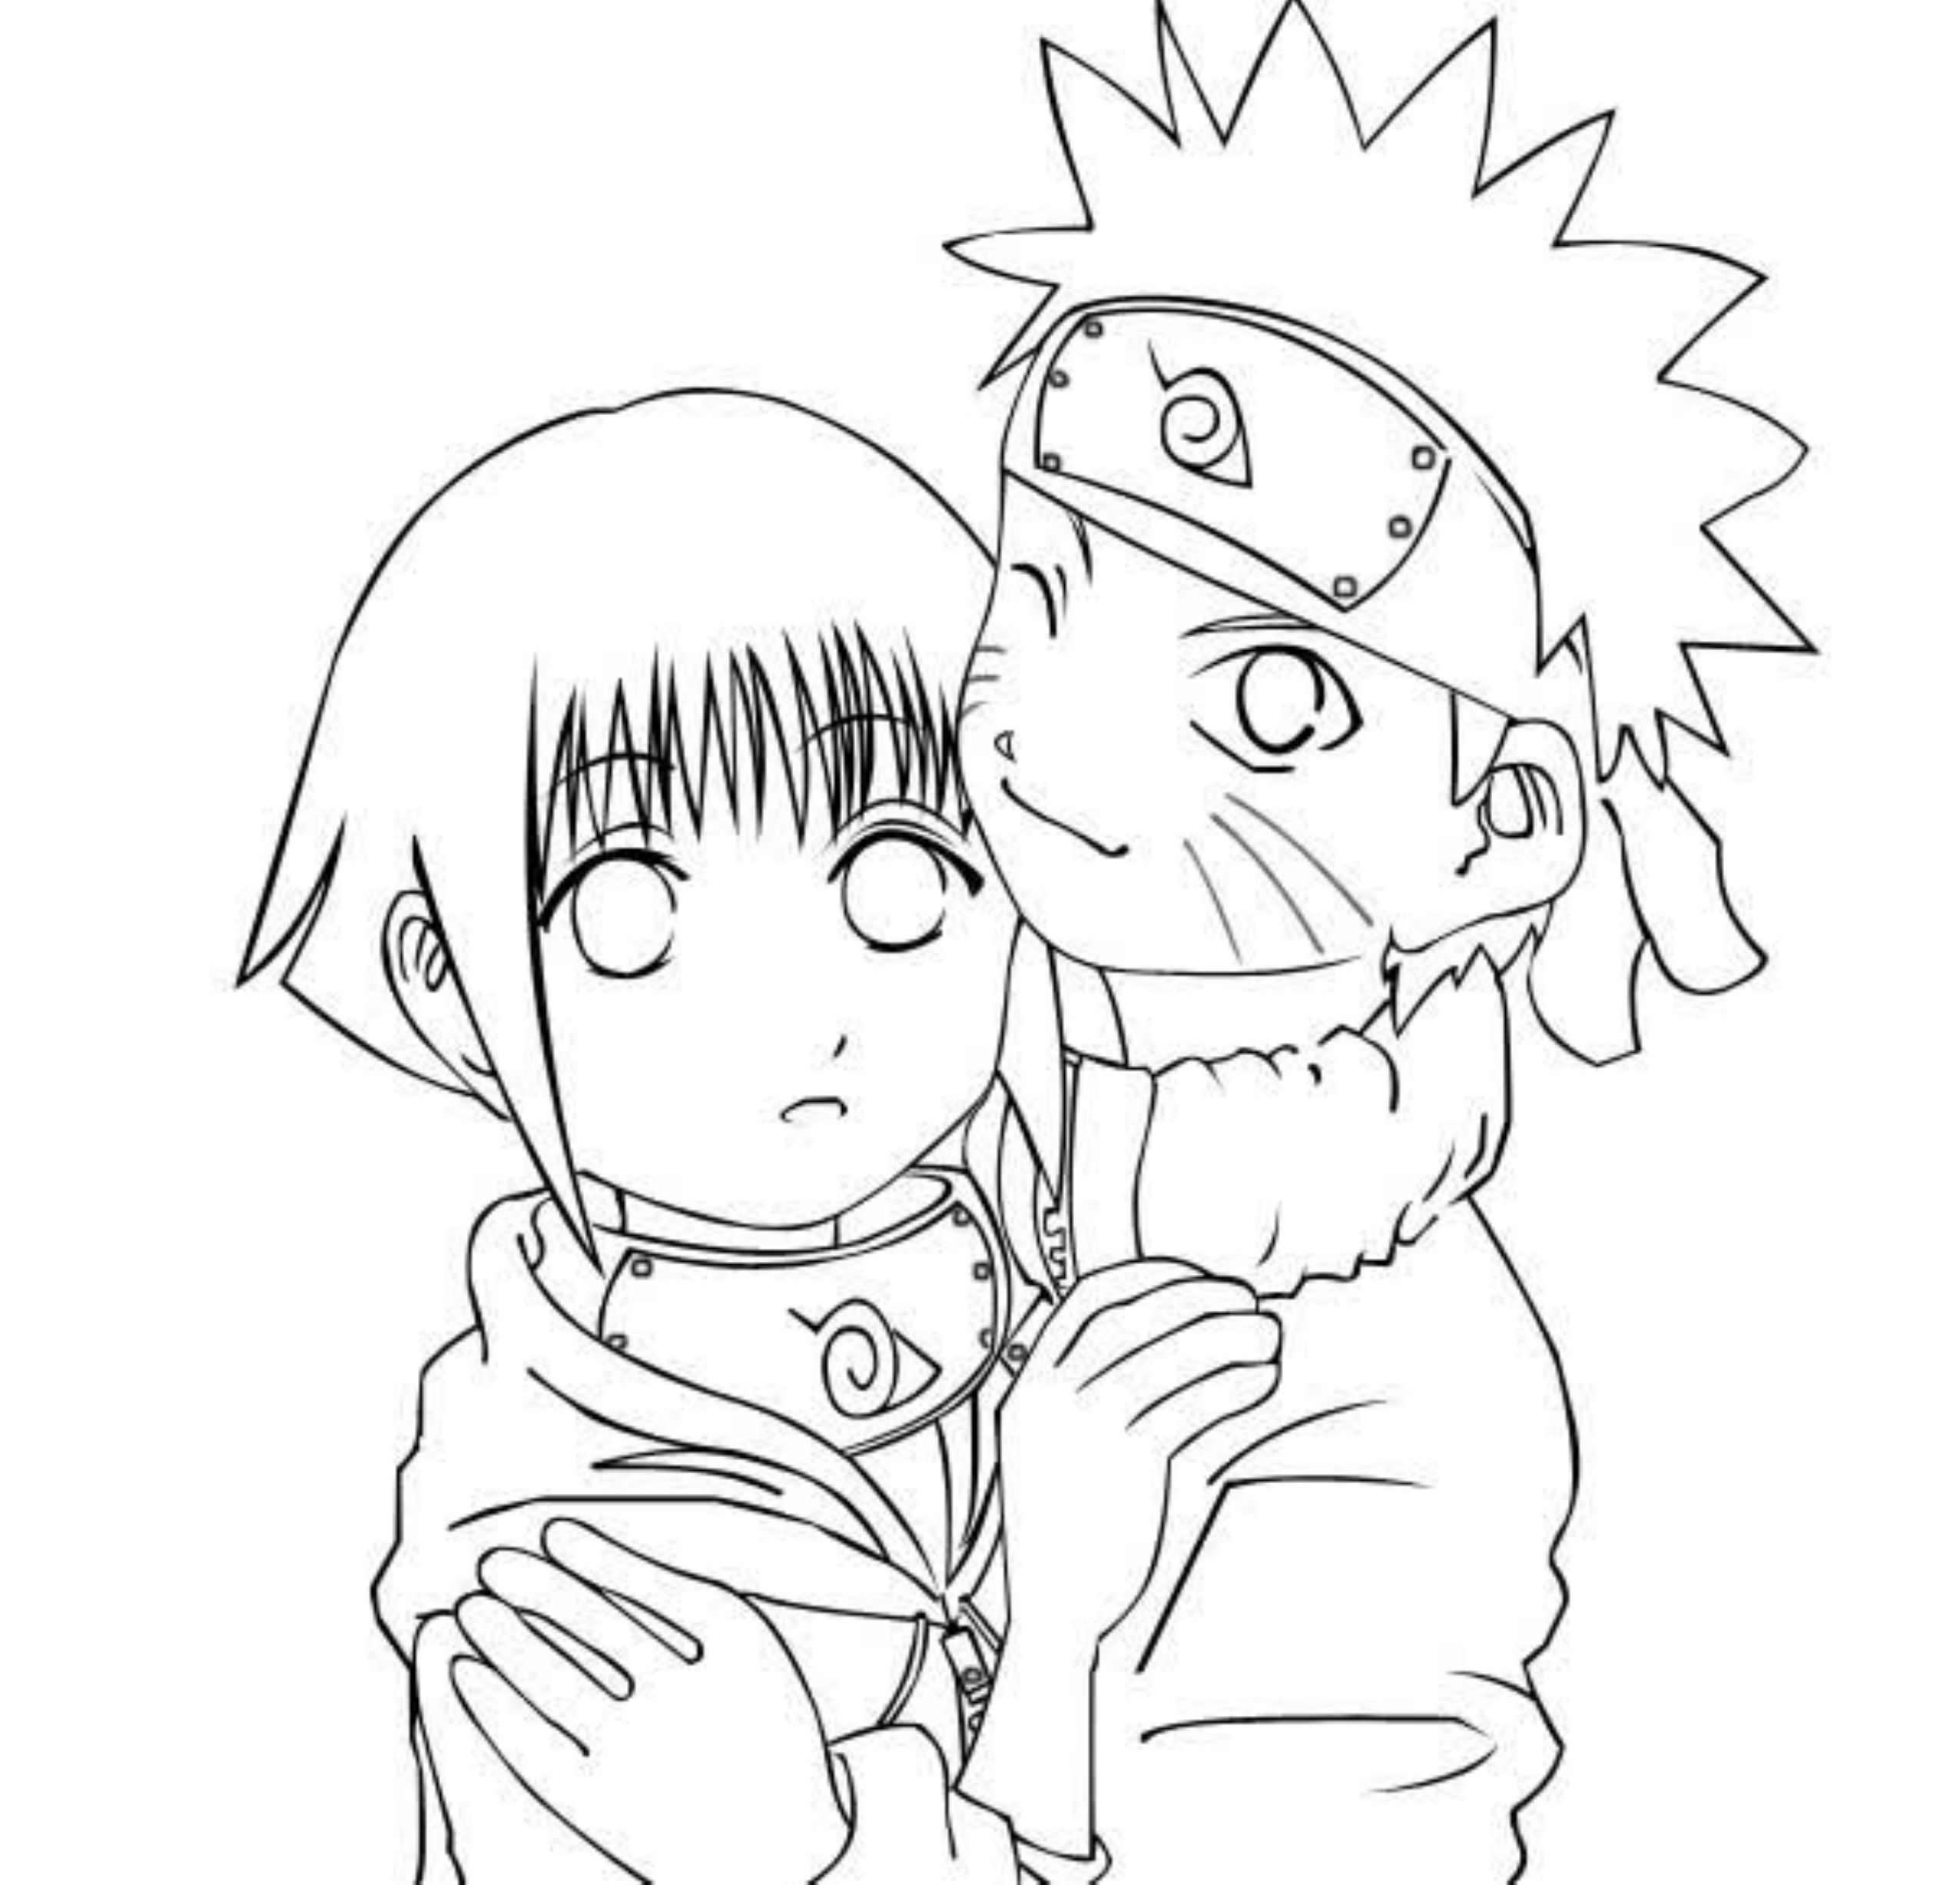 naruto coloring images printable naruto coloring pages to get your kids occupied naruto coloring images 1 2